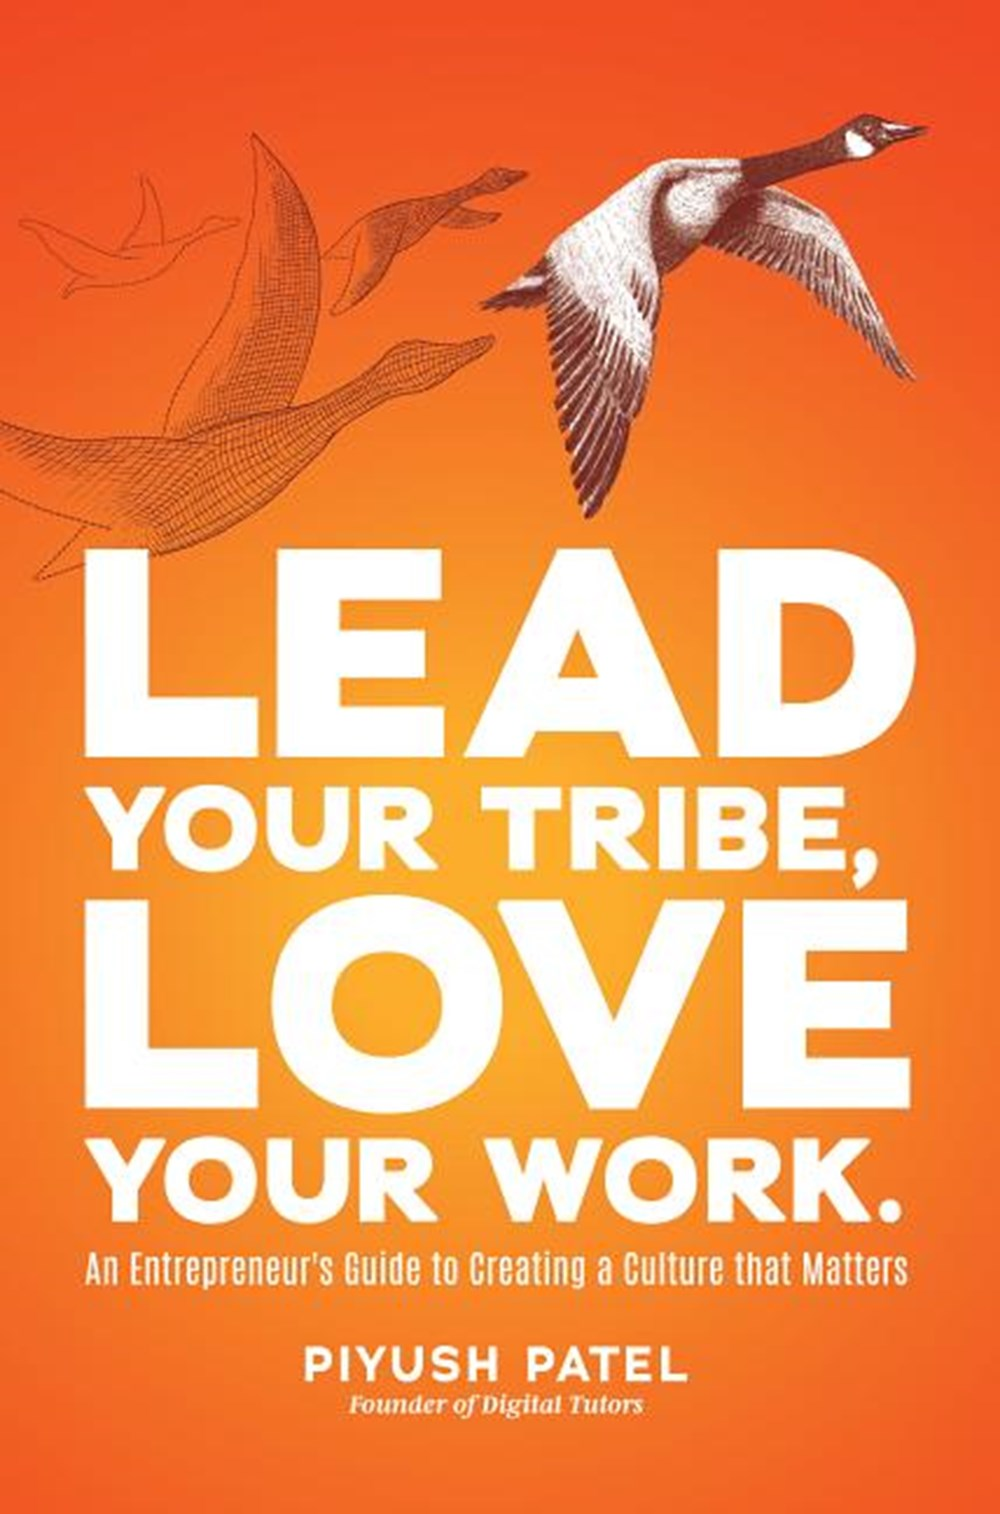 Lead Your Tribe, Love Your Work An Entrepreneur's Guide to Creating a Culture That Matters